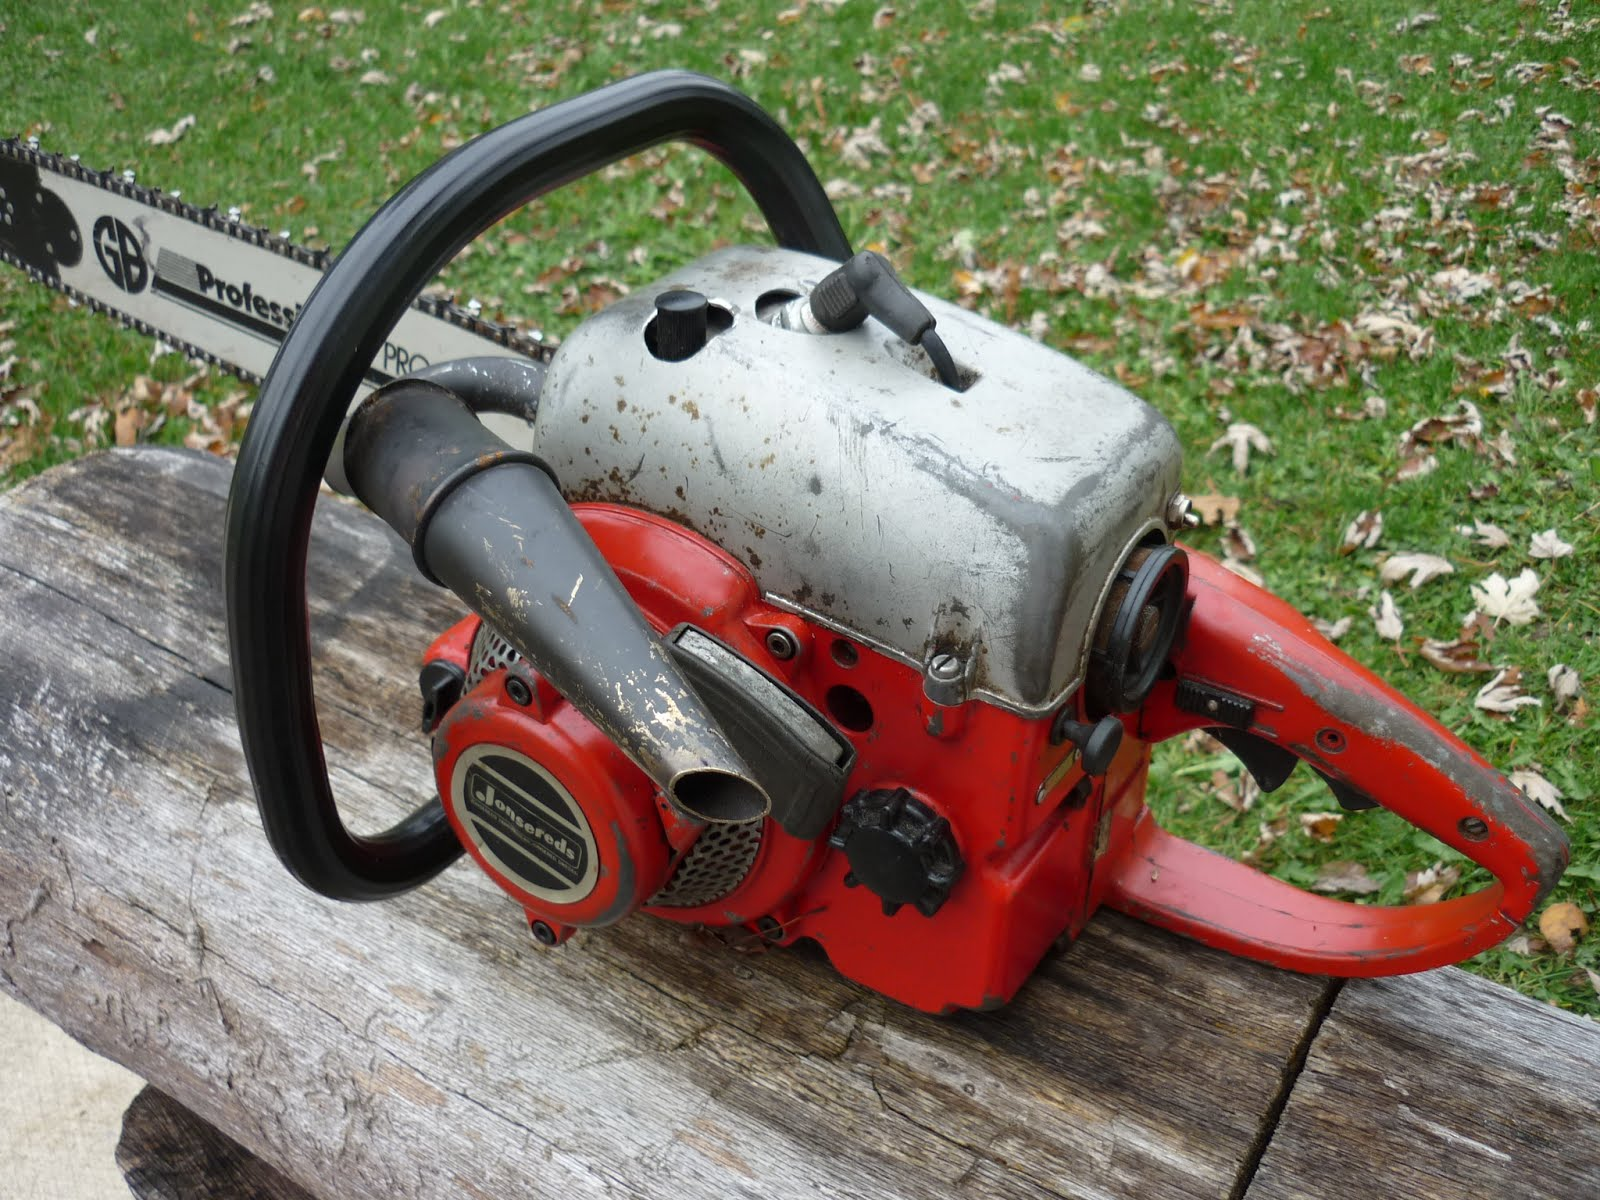 VINTAGE CHAINSAW COLLECTION: JONSERED GROUP OF SAWS